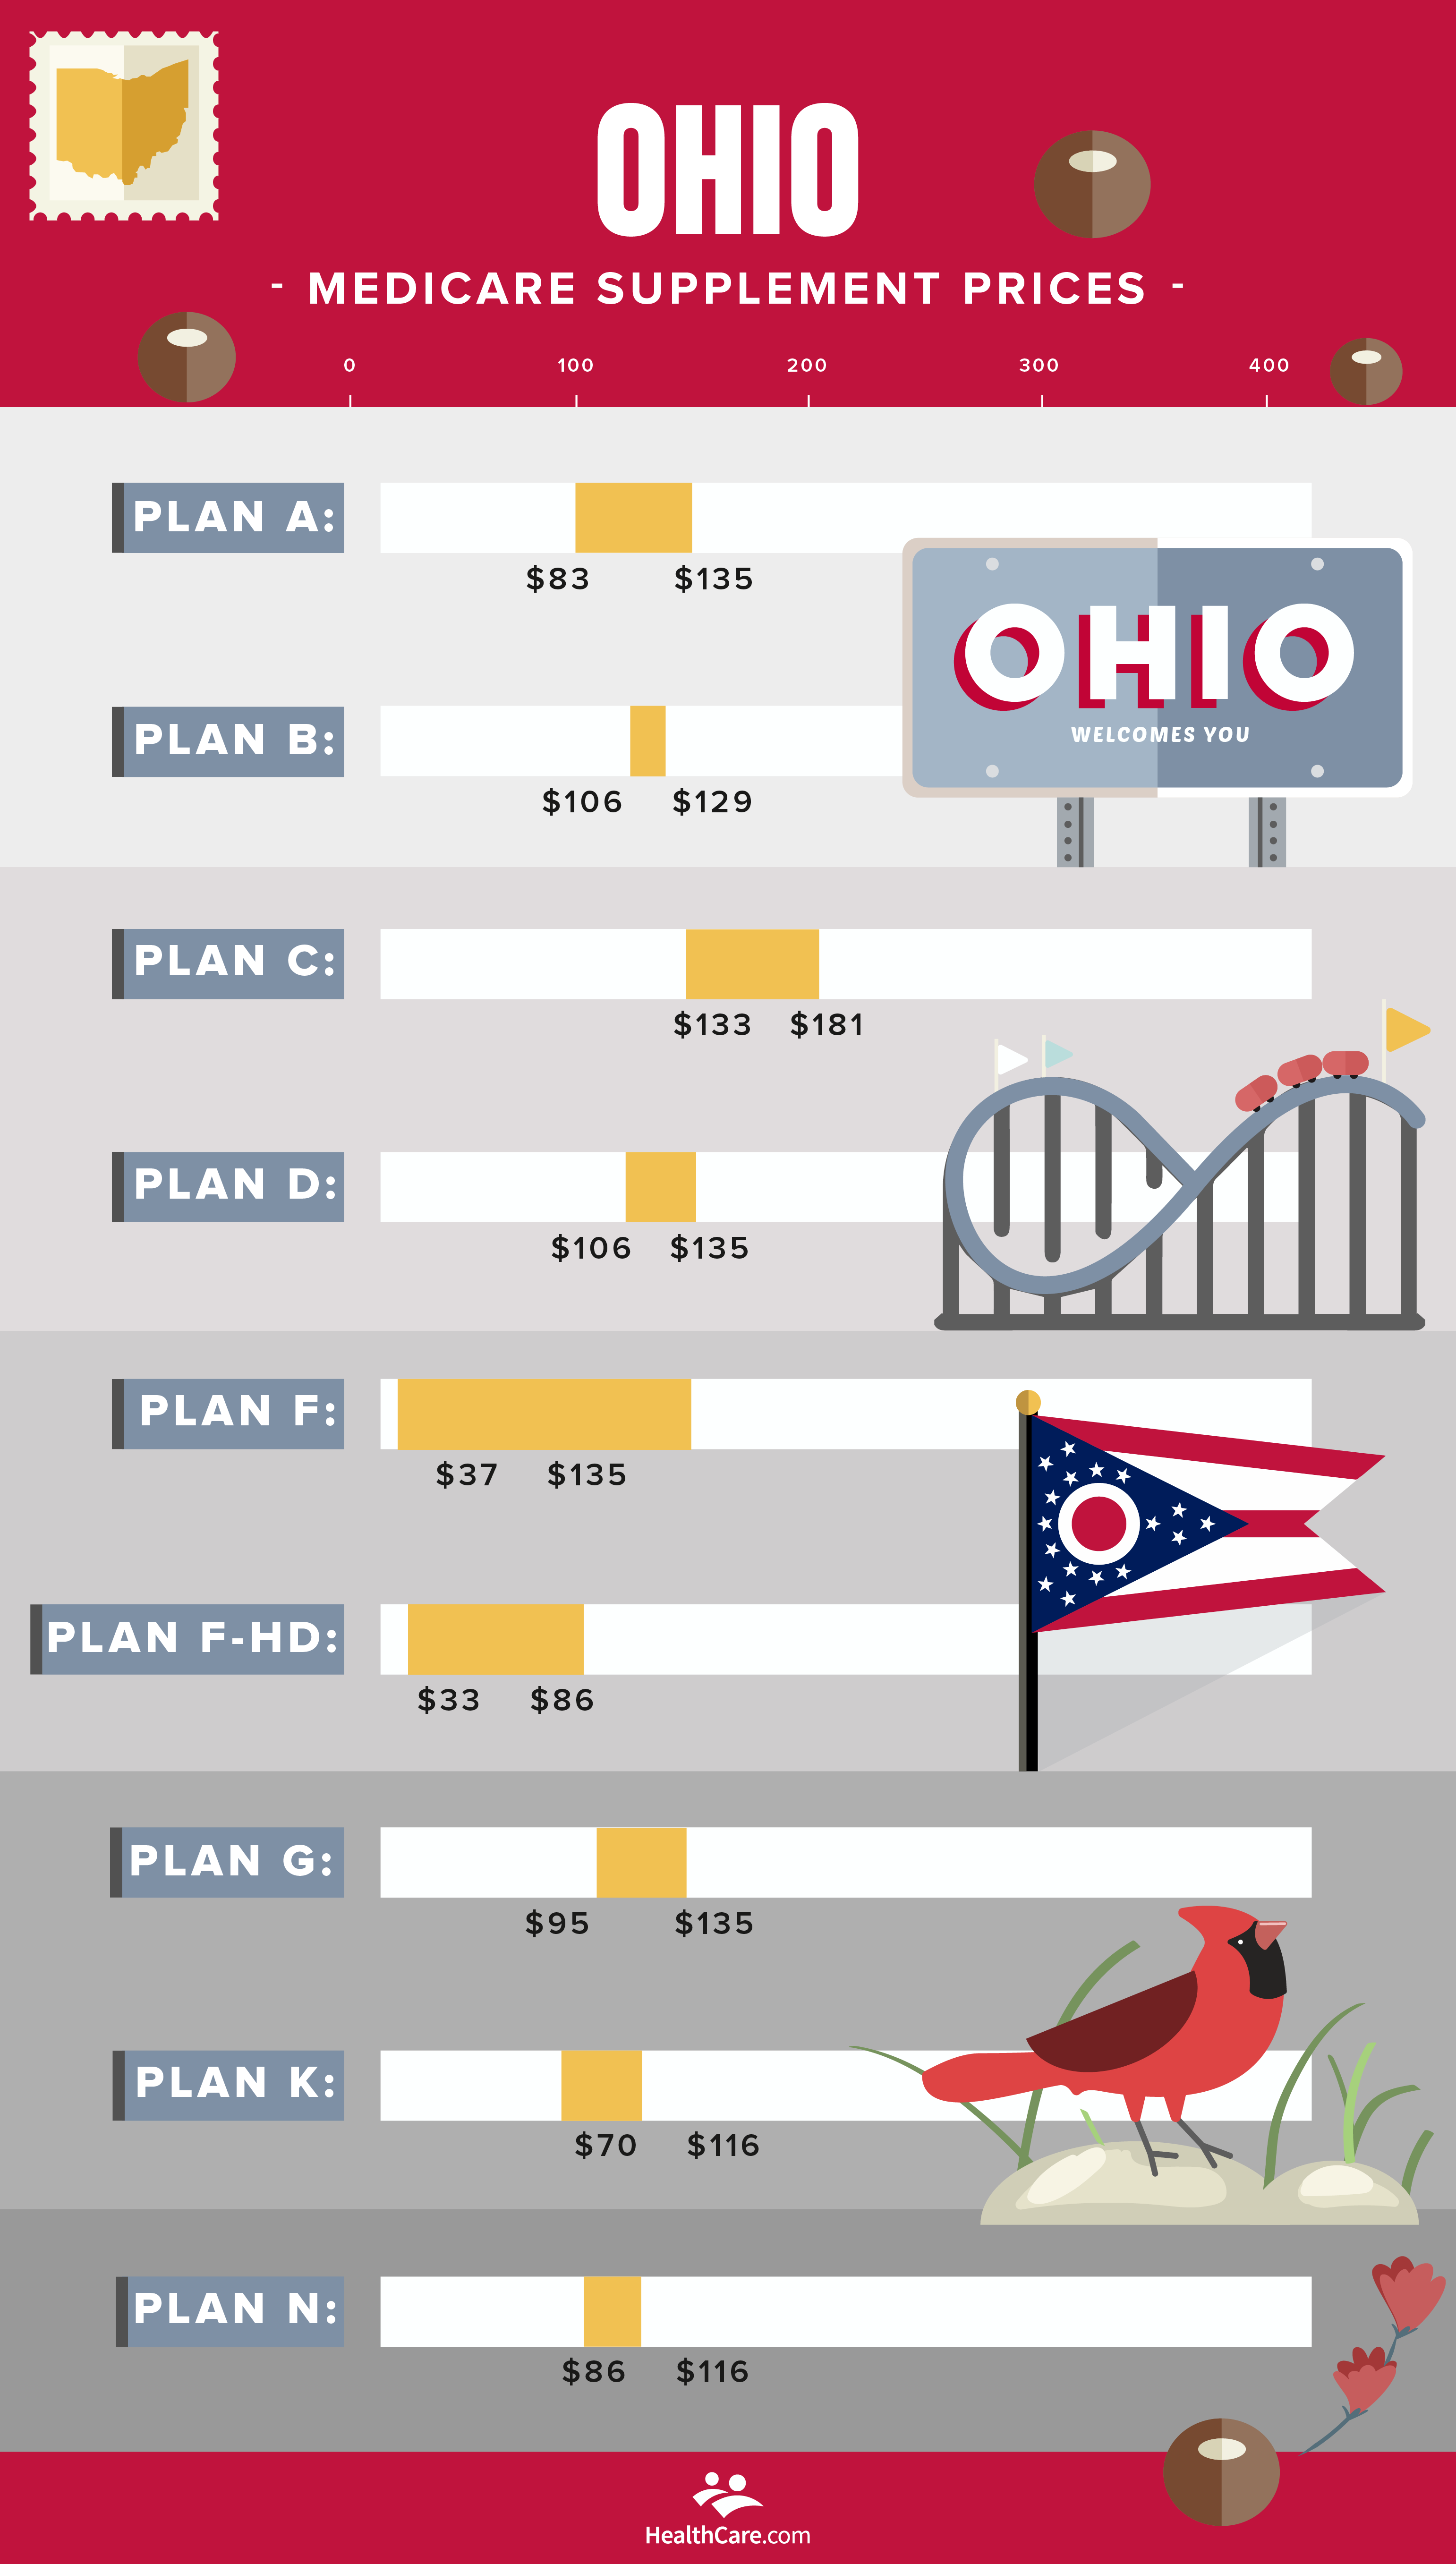 Ohio Medicare Supplement prices | chart